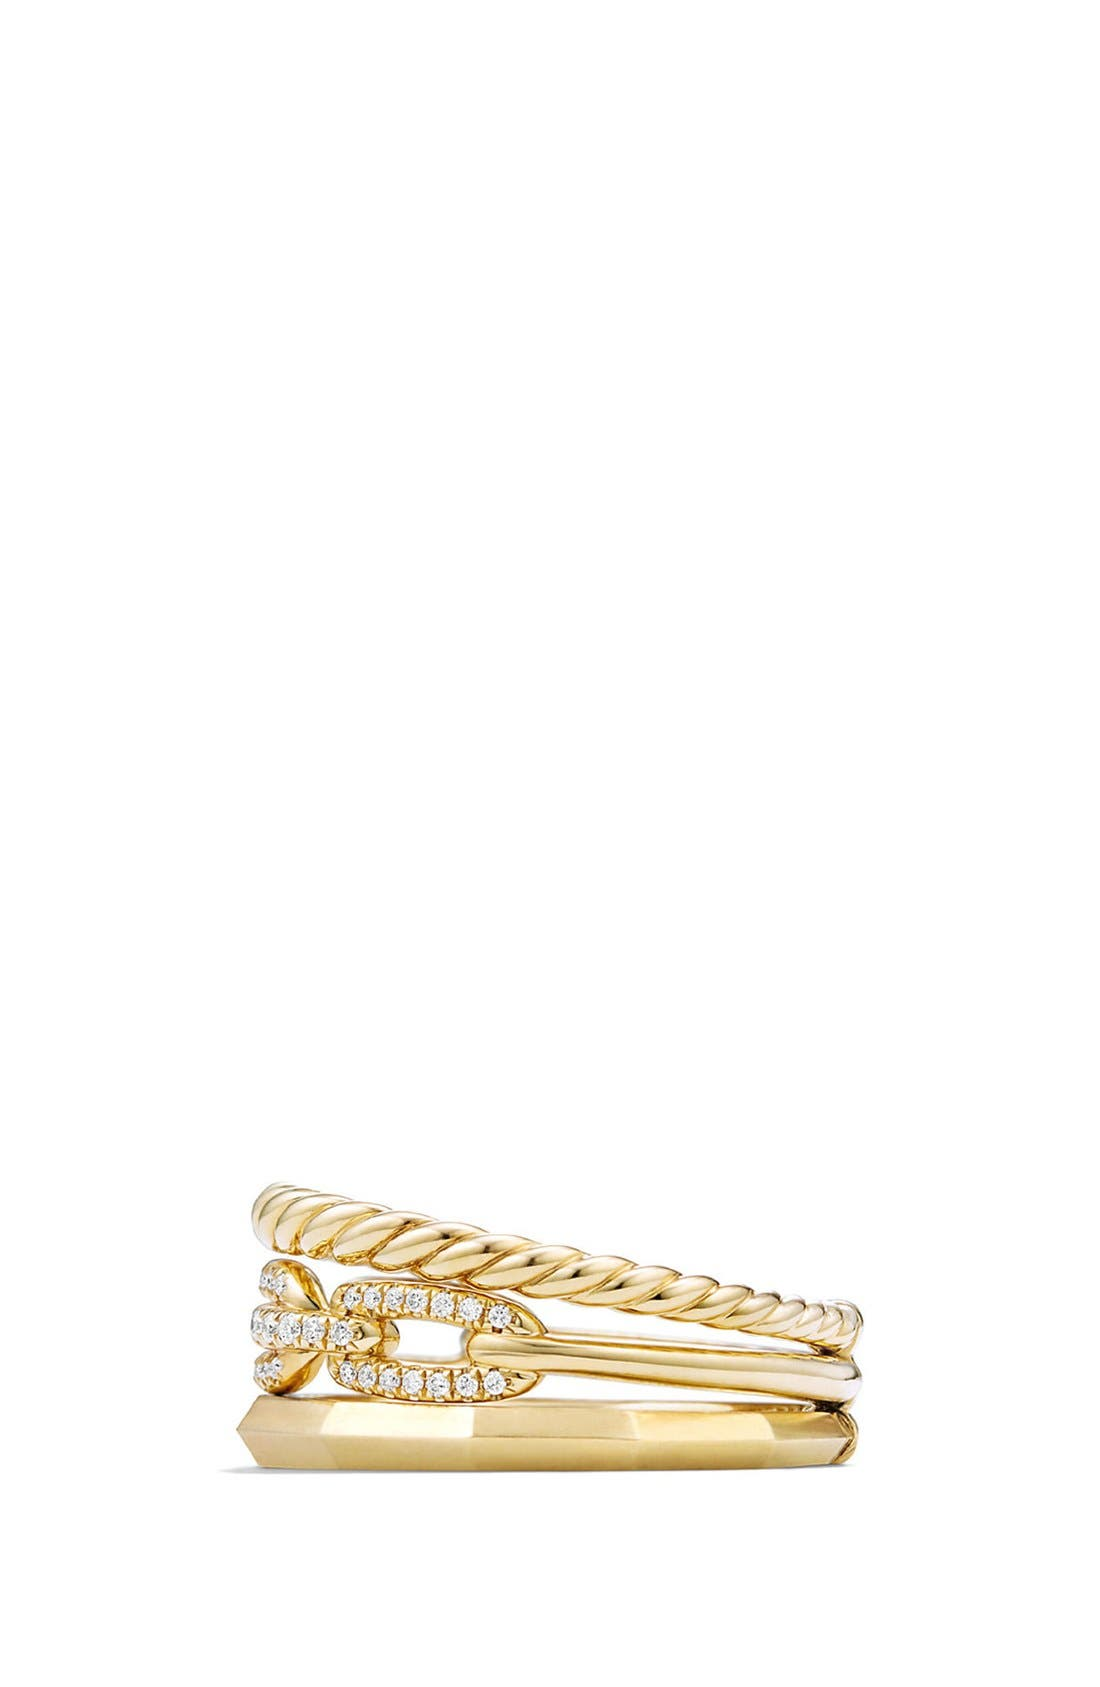 'Stax' Narrow Diamond Ring,                             Alternate thumbnail 2, color,                             YELLOW GOLD